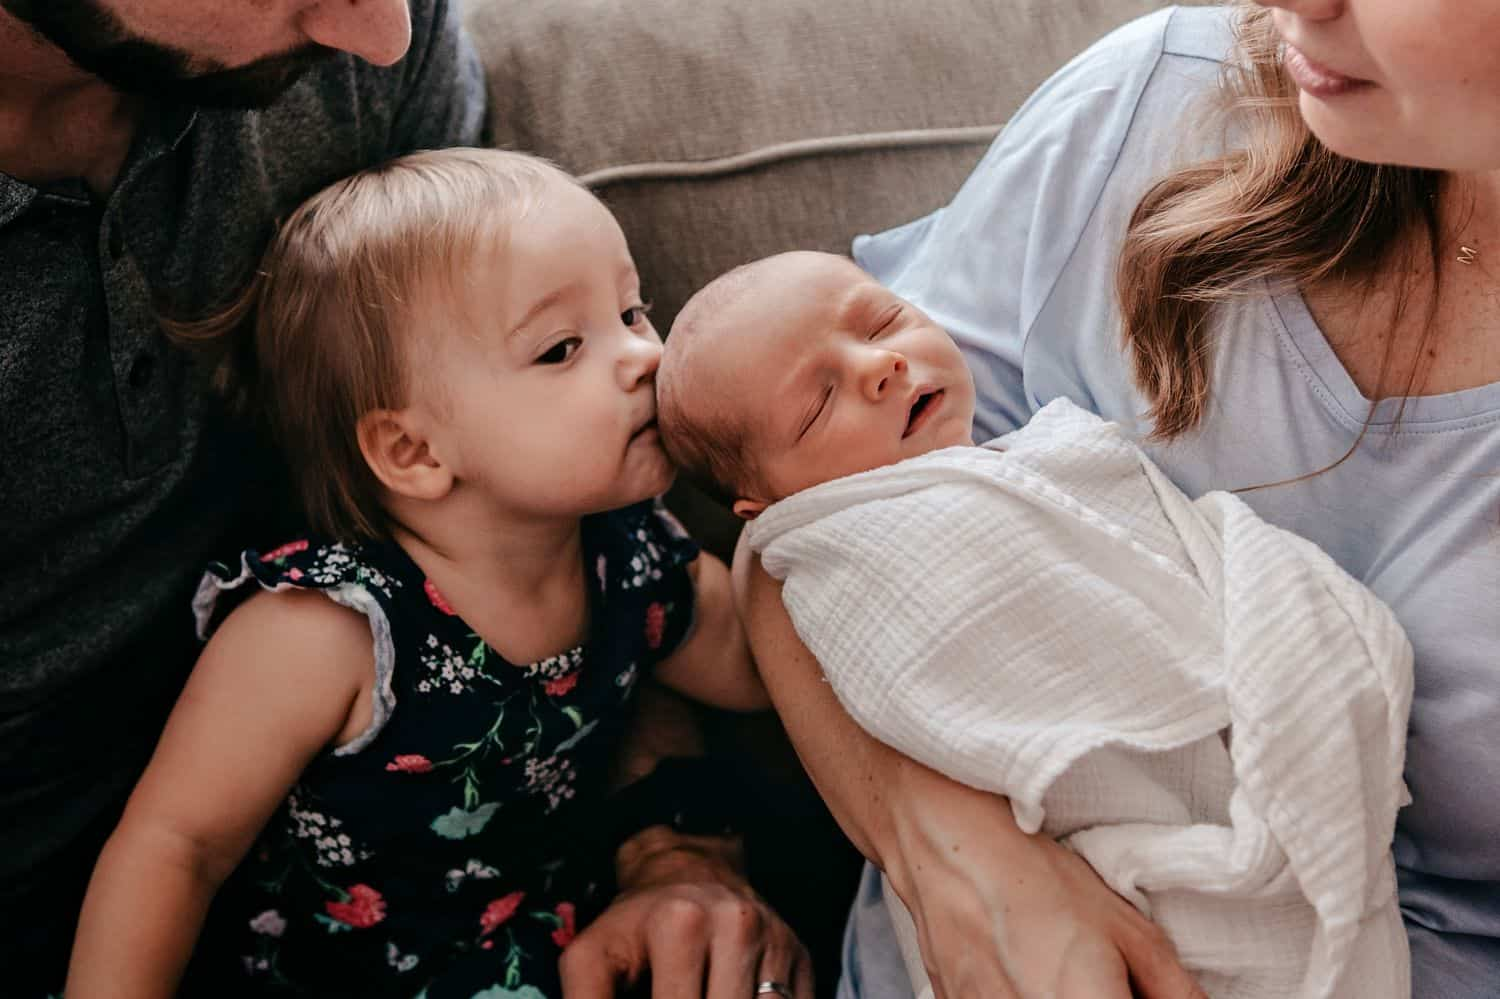 Mom holds a newborn baby so his sister can kiss him on the head.